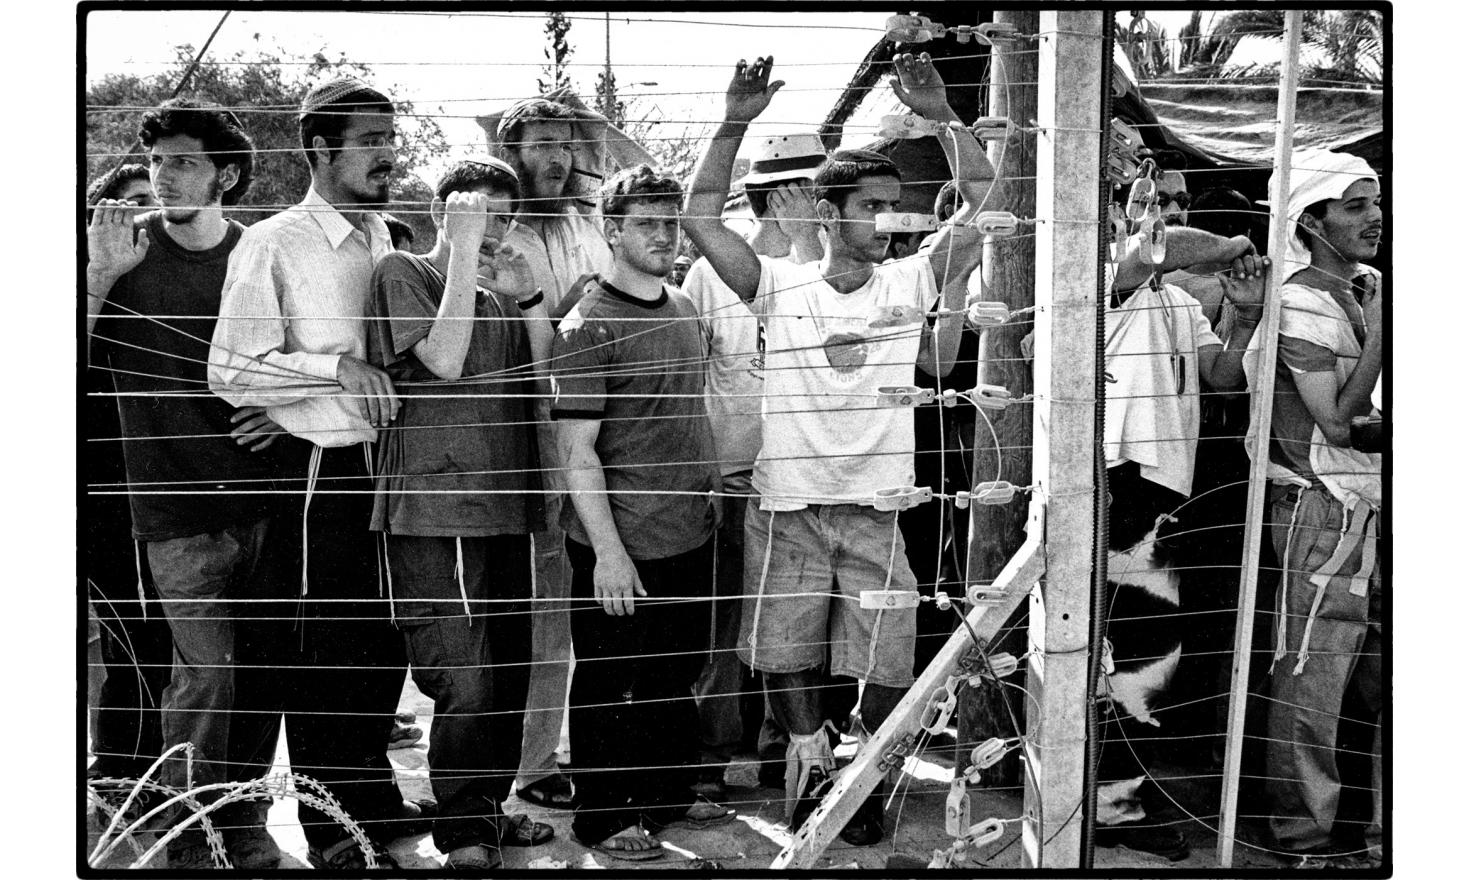 Young israeli settlers at the gate of a Gush Katif settlement. They refuse to leave and are waiting for the israeli army to dislodge them. Gush Katif, Gaza. August 2005.